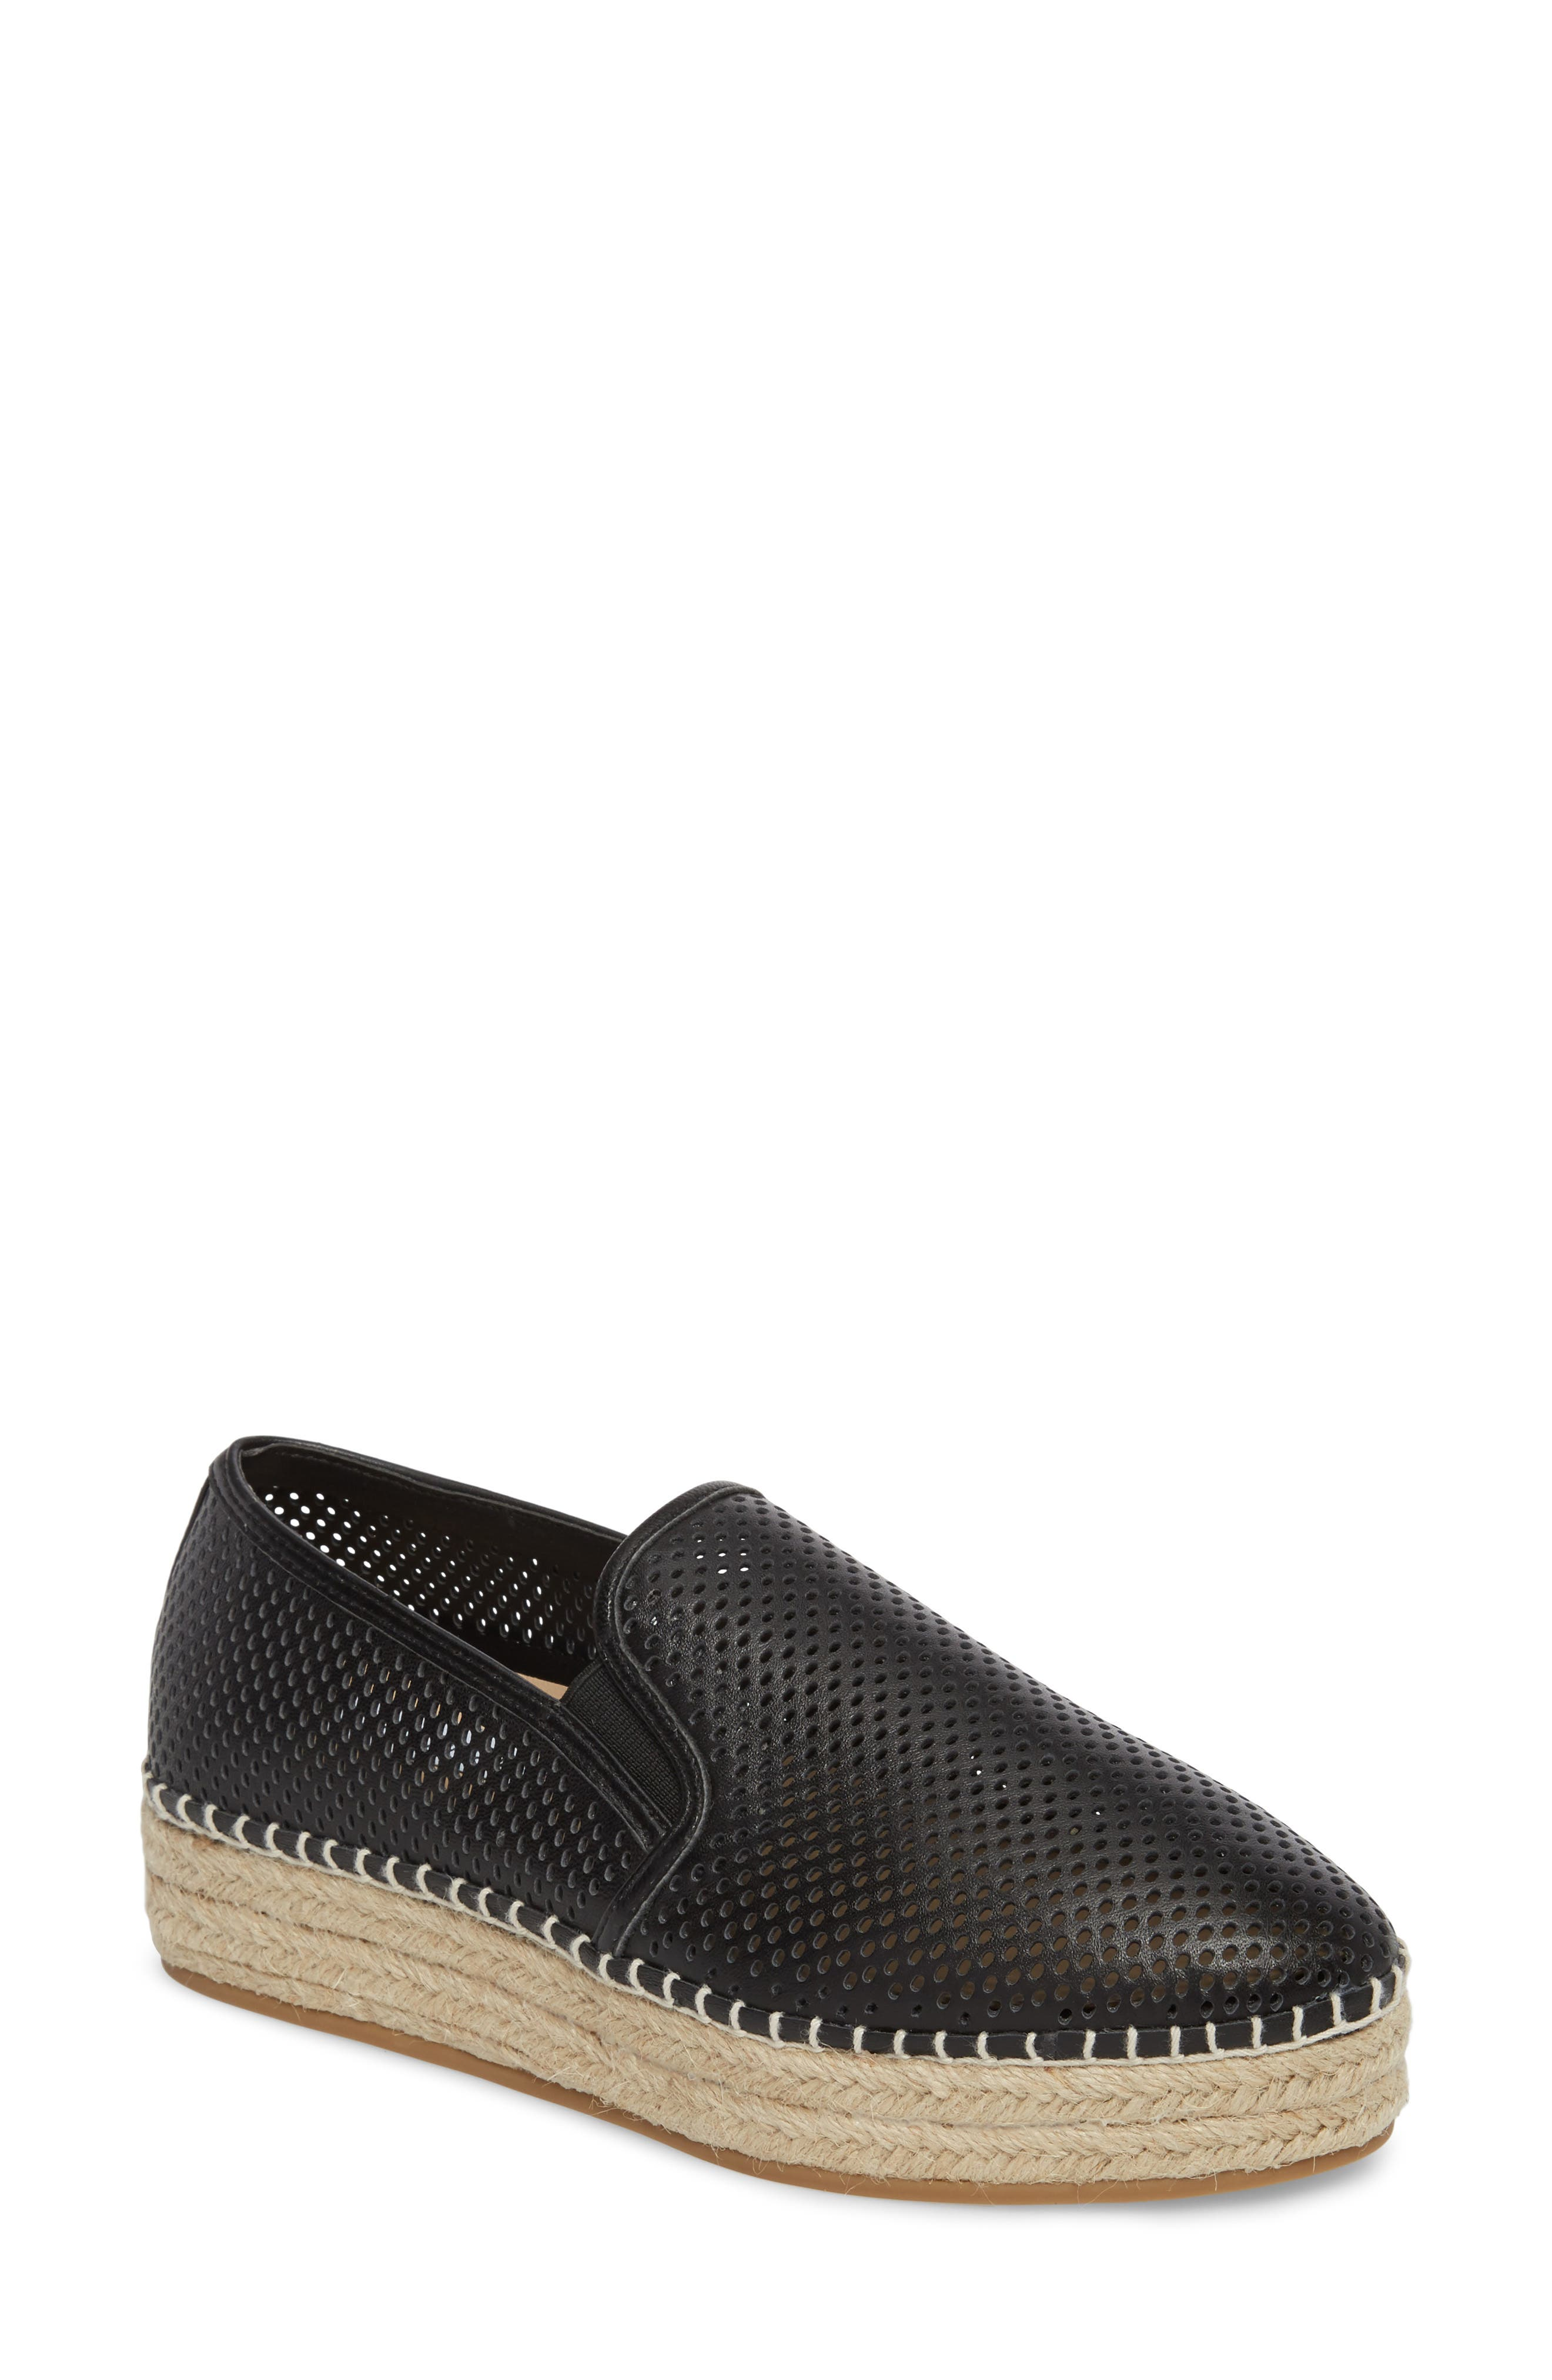 Wright Perforated Platform Espadrille,                         Main,                         color, 001